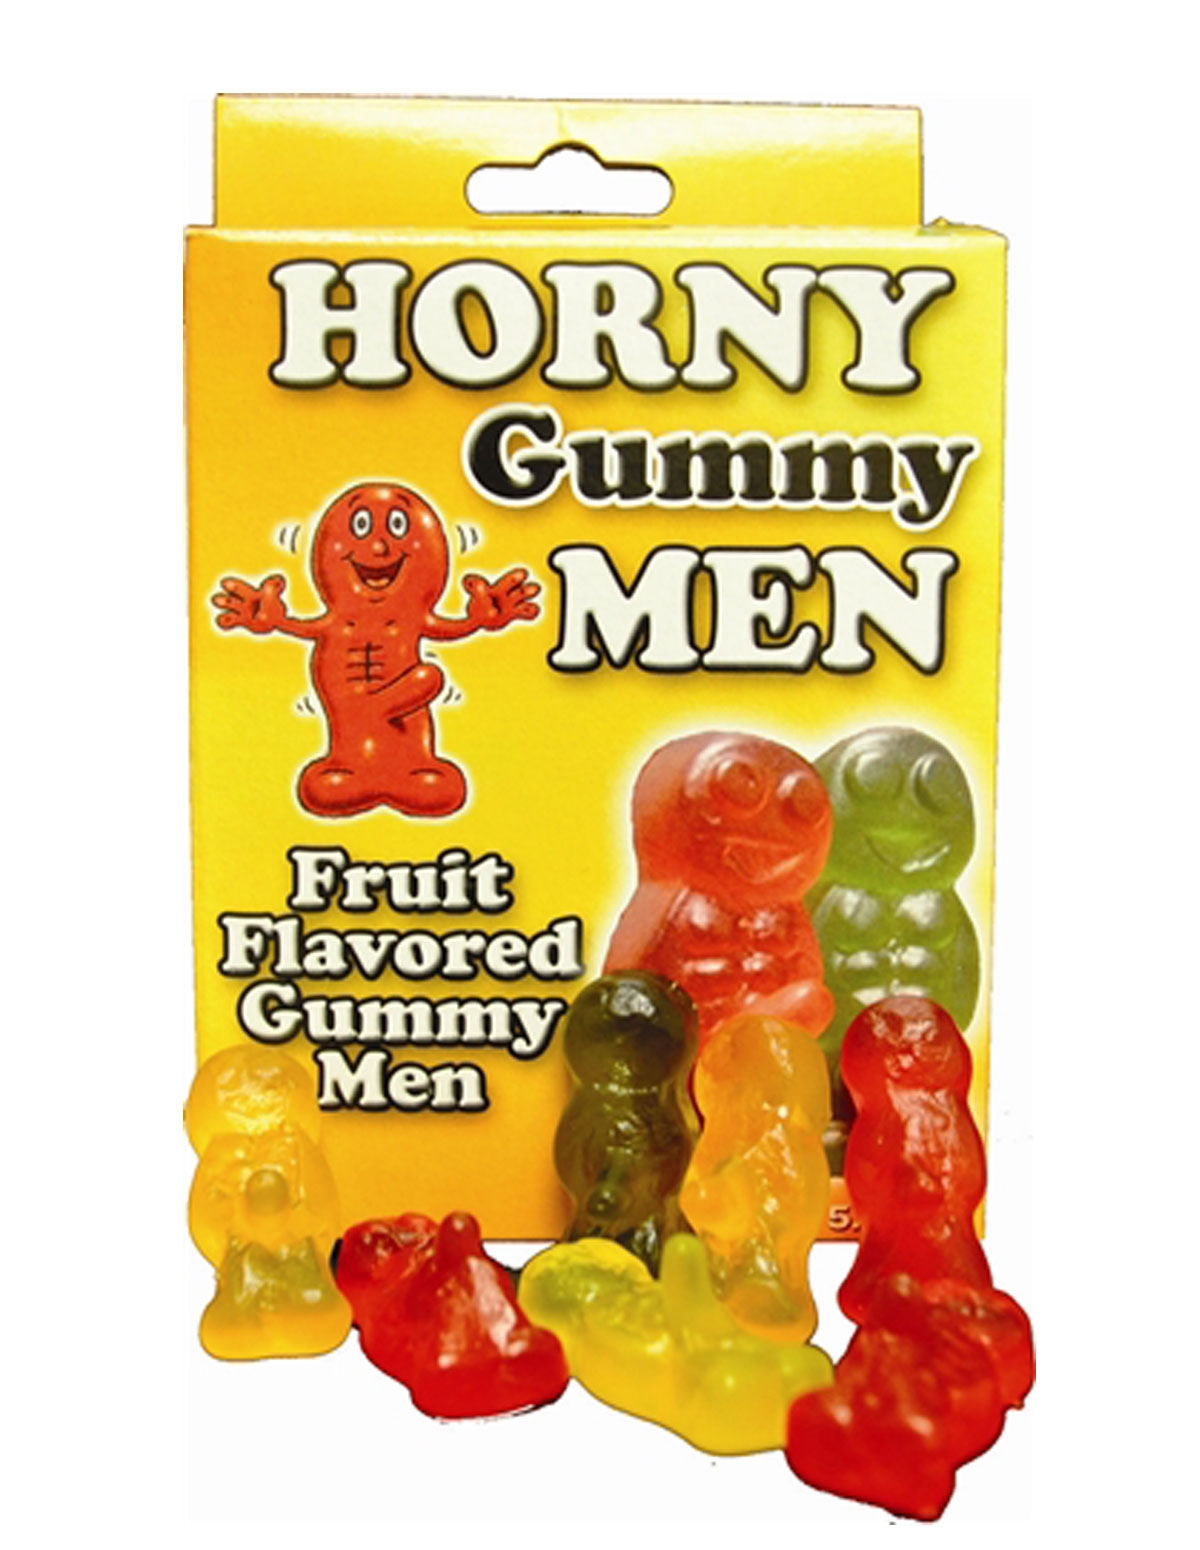 Horny Gummy Men Candies